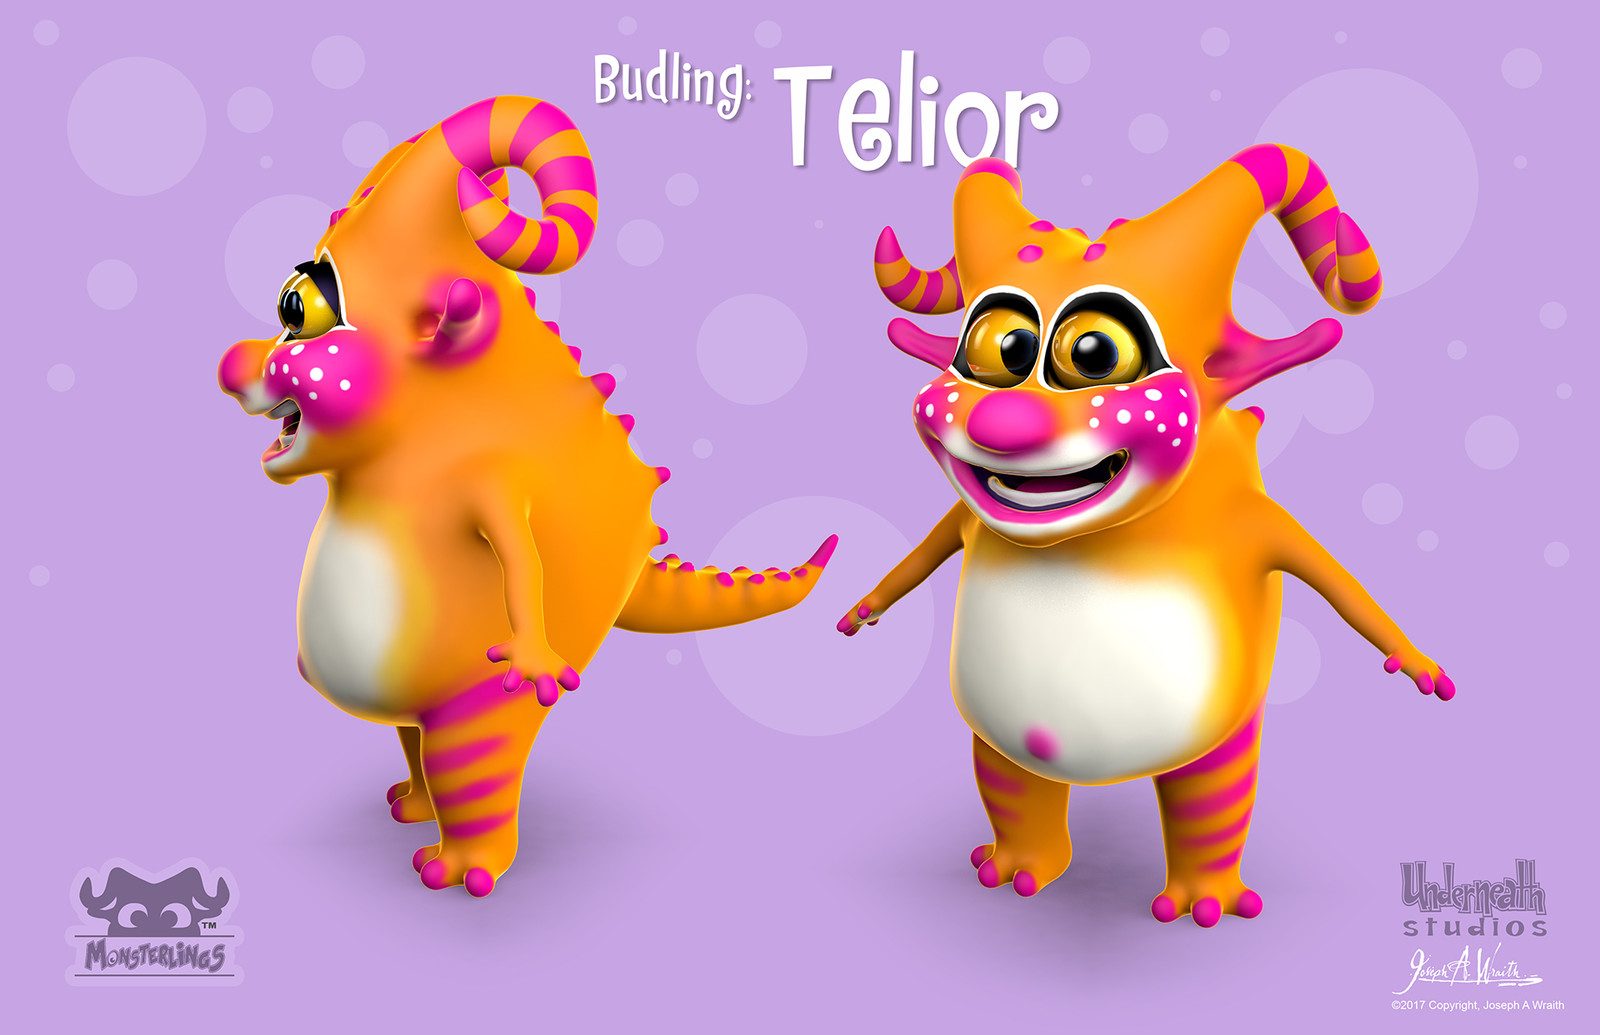 Monsterlings: Budling - Telior